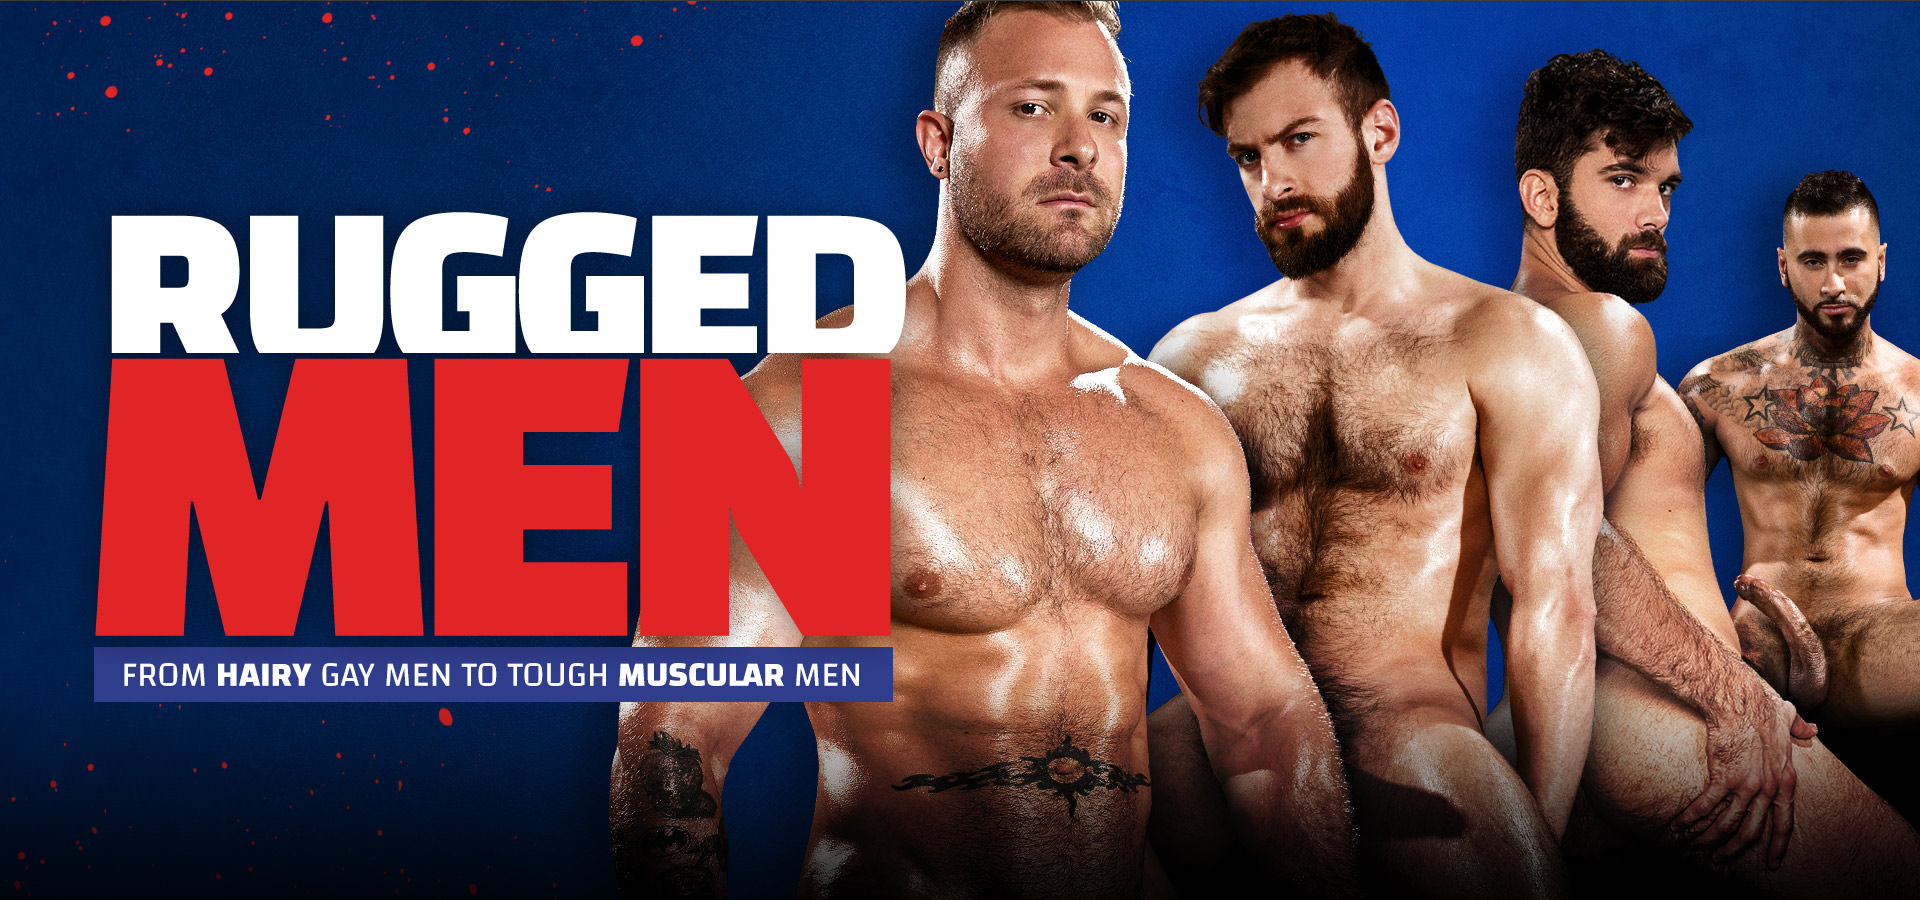 From hairy gay men to tough muscular men